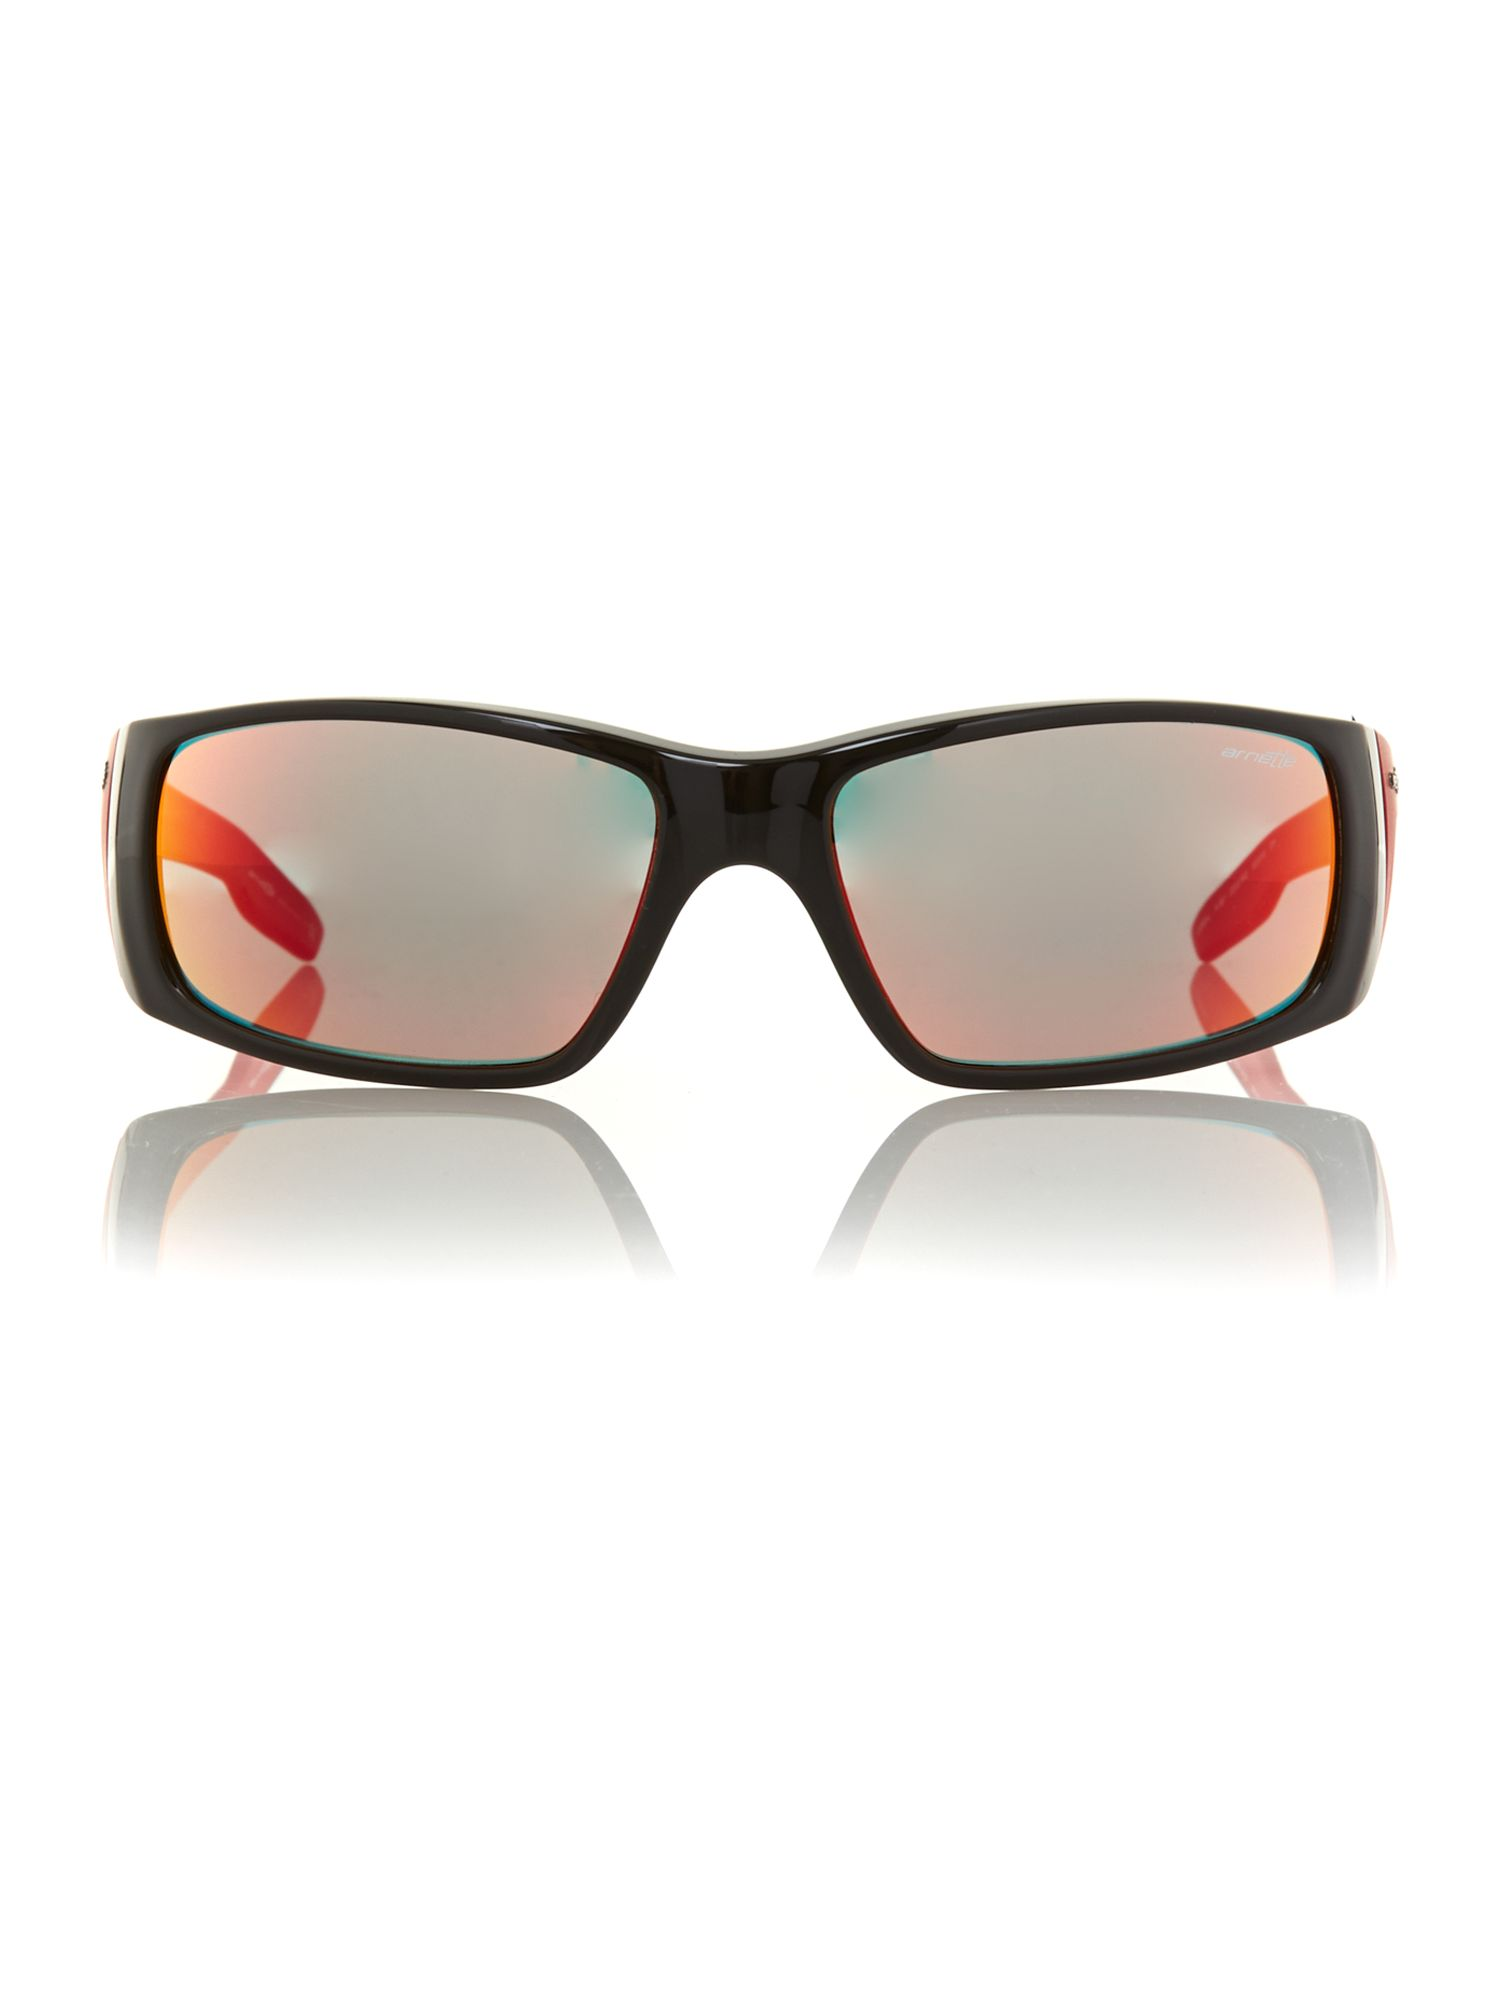 Men`s unreal black red sunglasses